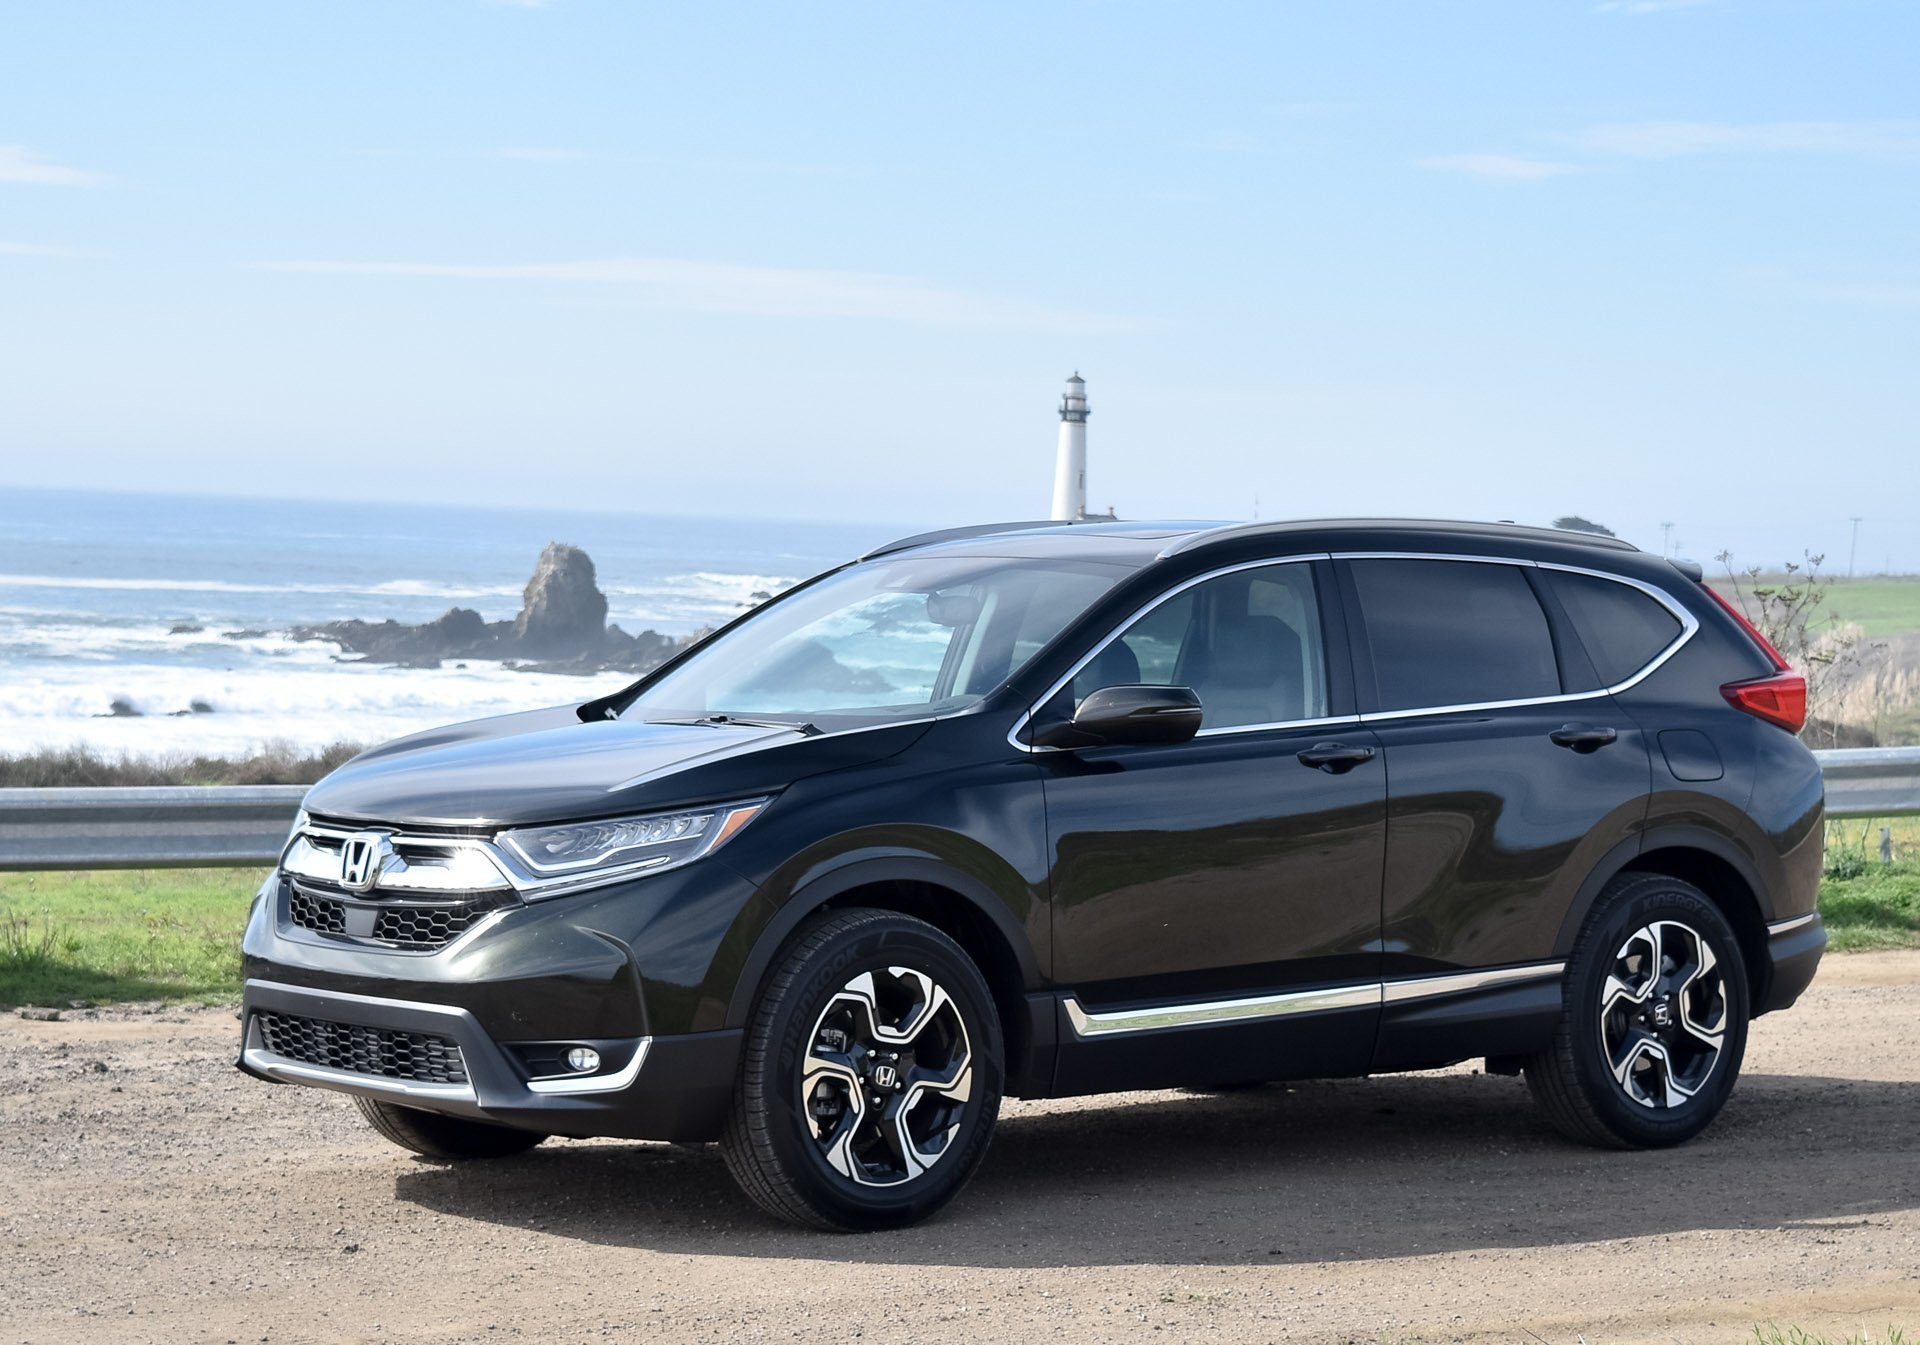 Honda Crv 2017 | Autos Post